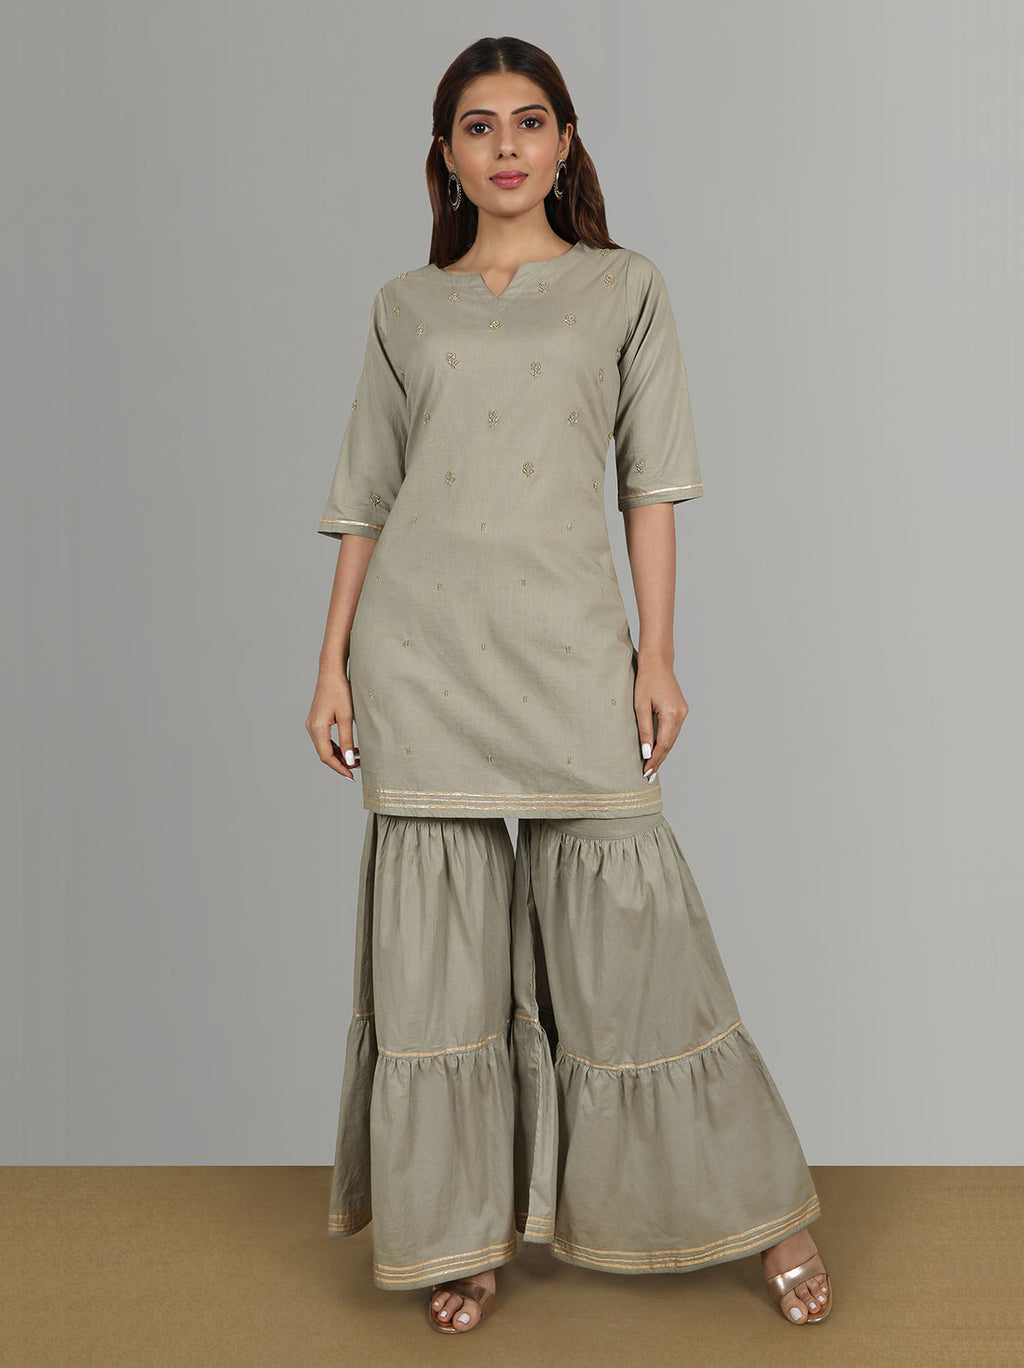 Ethnic Wear Online - Cotton Kurti With Bead Work & Gharara Pants